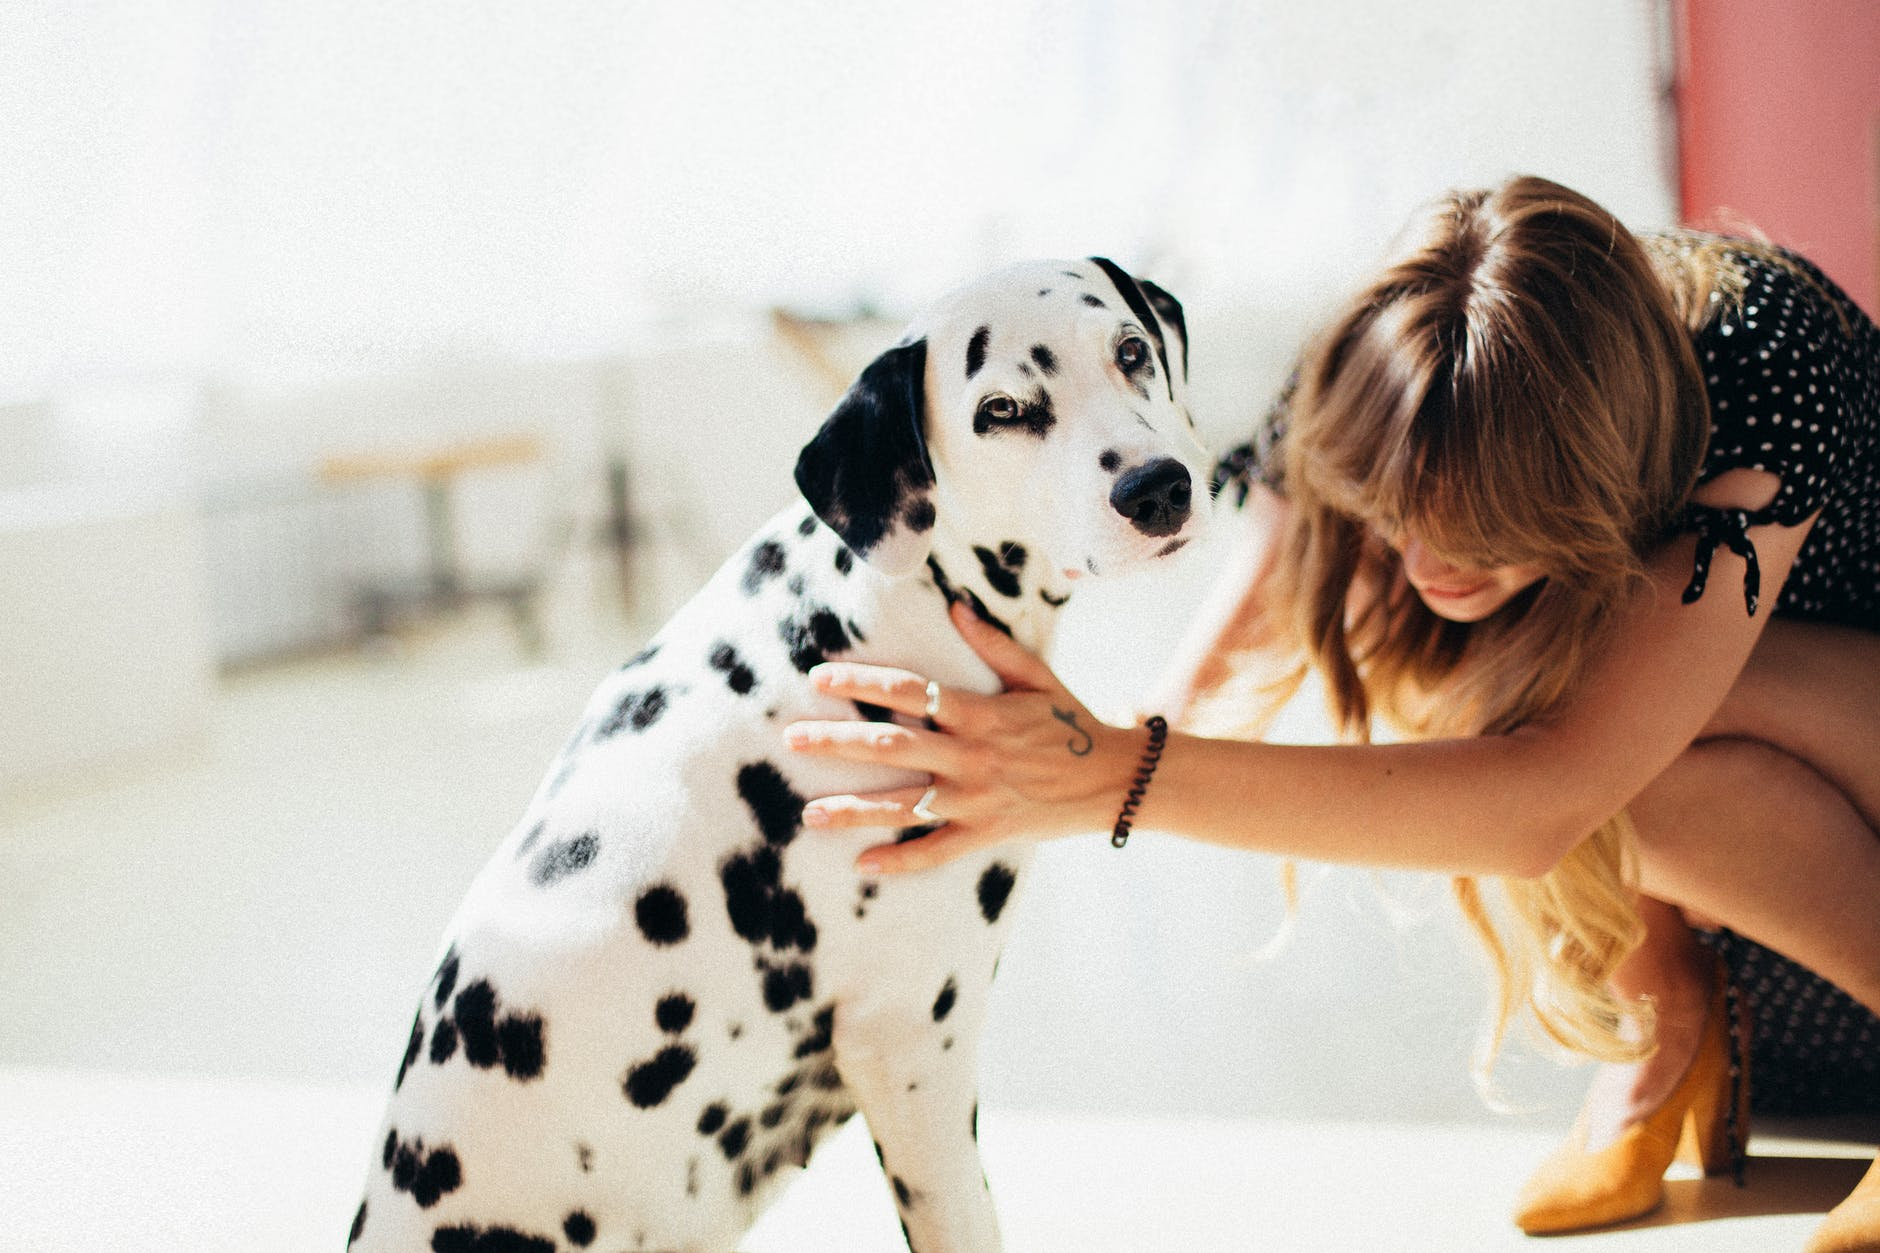 Benefits: There is evidence suggesting that attachment to pets is good for human health and even helps build community.